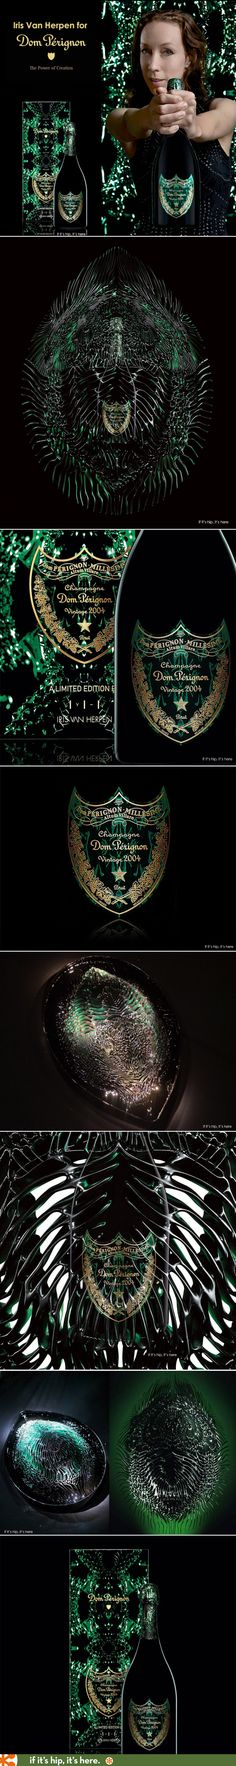 Iris Van Herpen creates Metamorphosis. A limited edition bottle, label and made to order art piece (the Cocoonase) for Dom Perignon